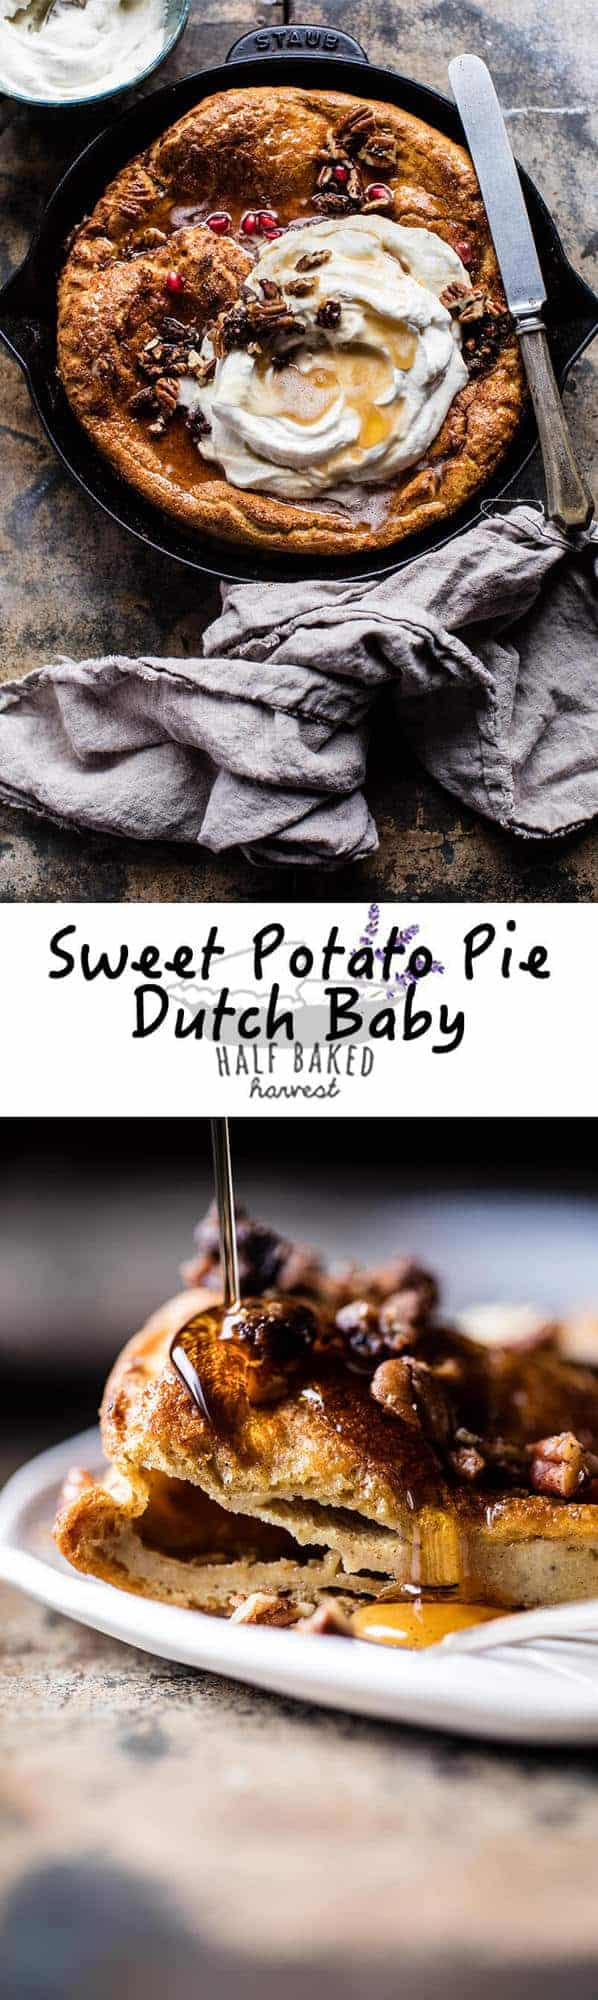 Sweet Potato Pie Dutch Baby | halfbakedharvest.com @hbharvest